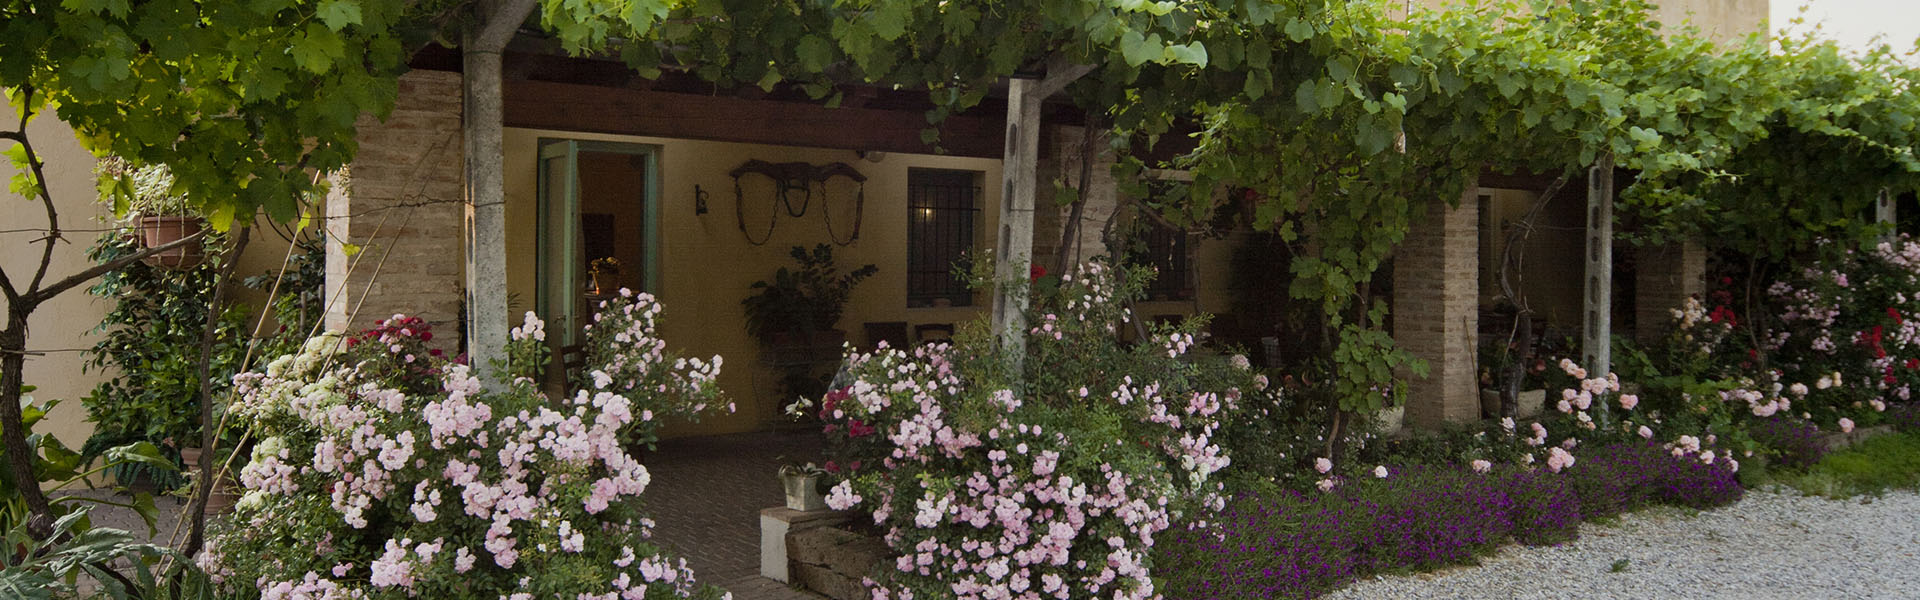 Agriturismo Corte Gaia Accomodation and Typical Cousine